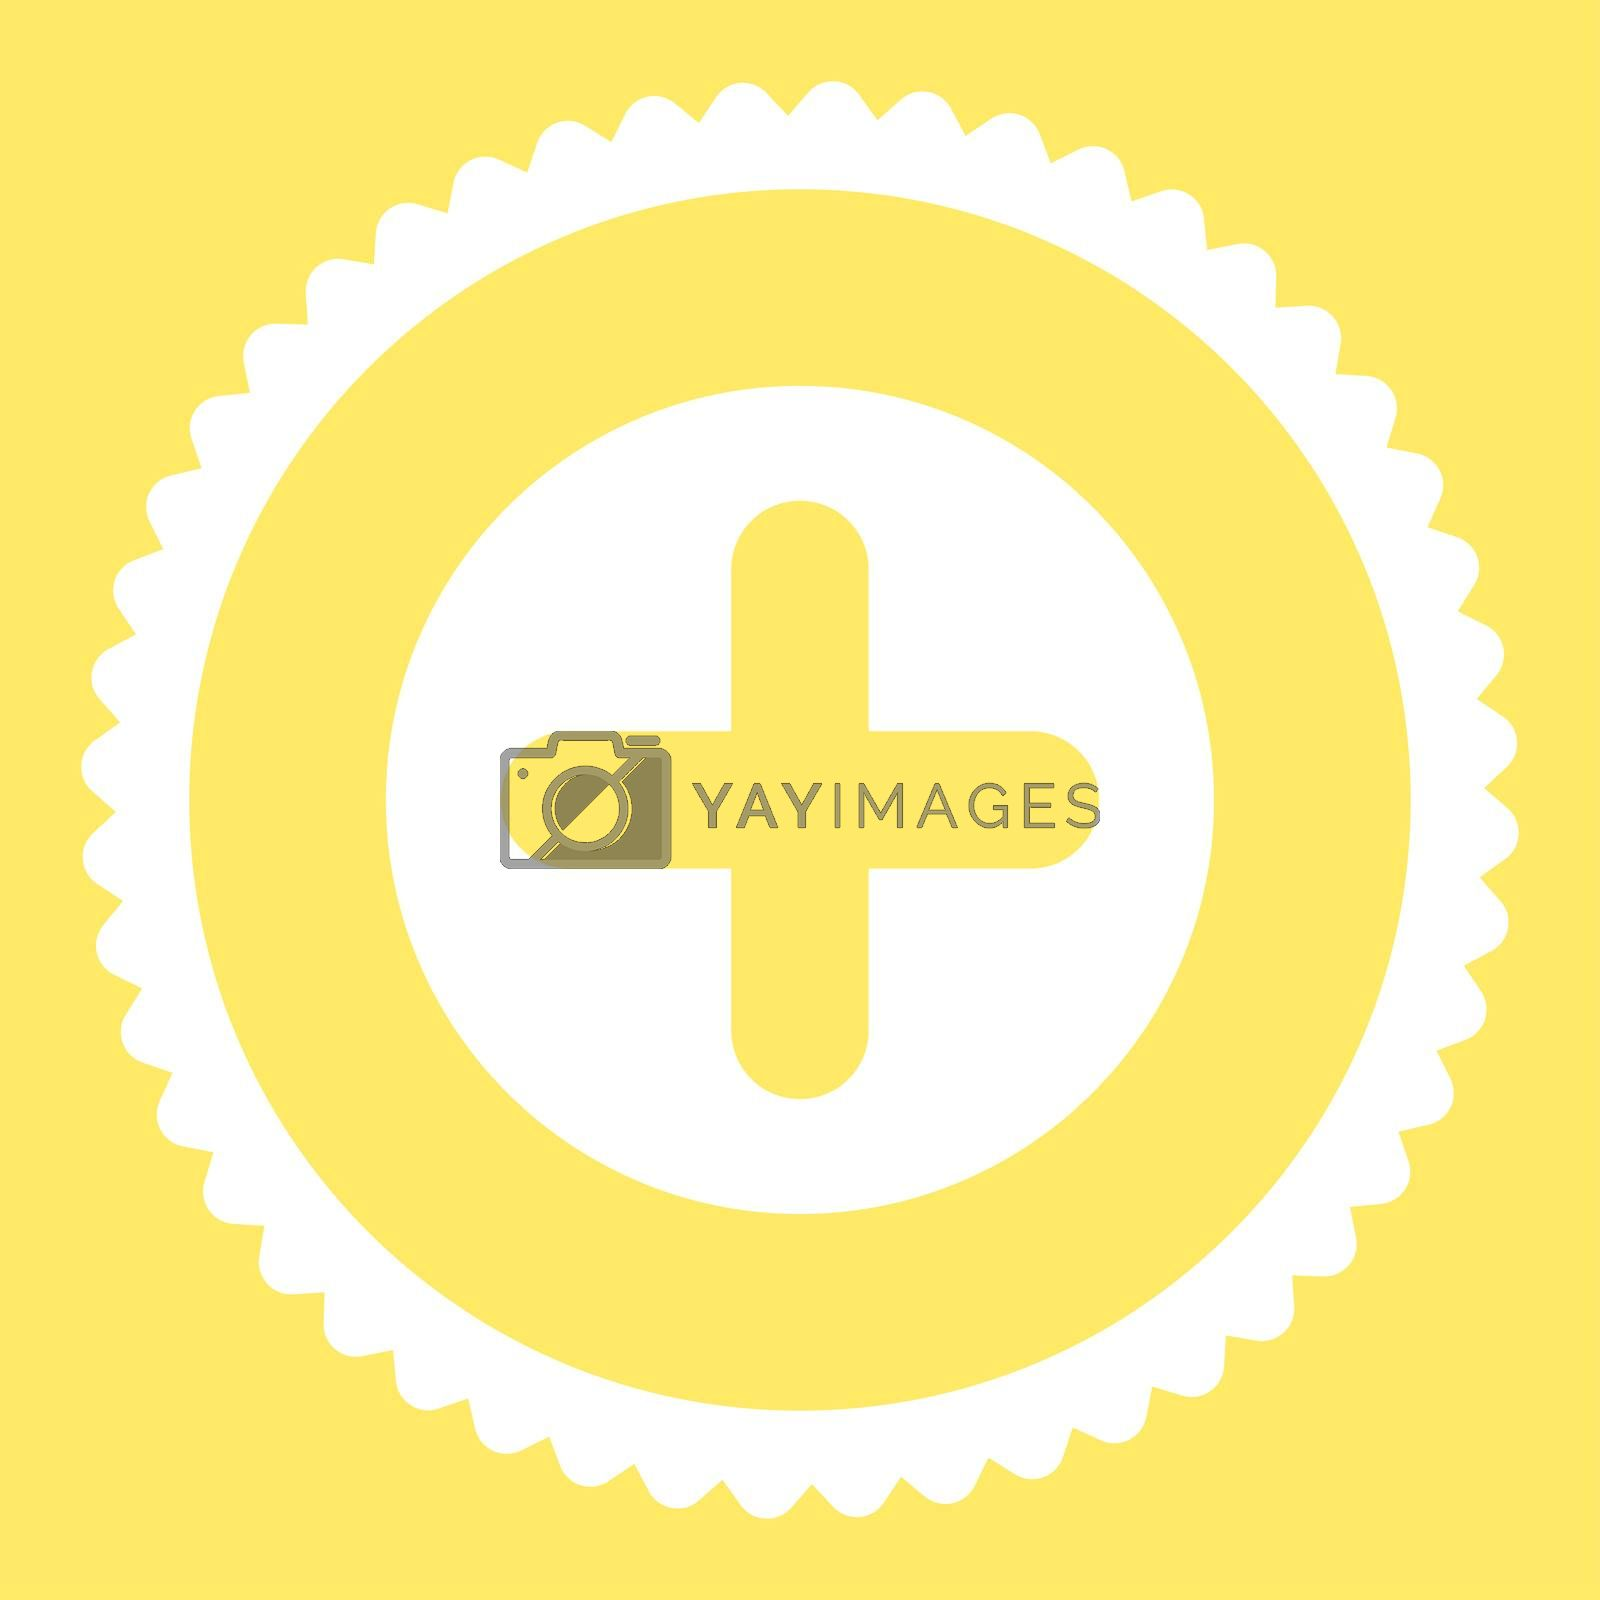 Create flat white color round stamp icon by Aha-Soft